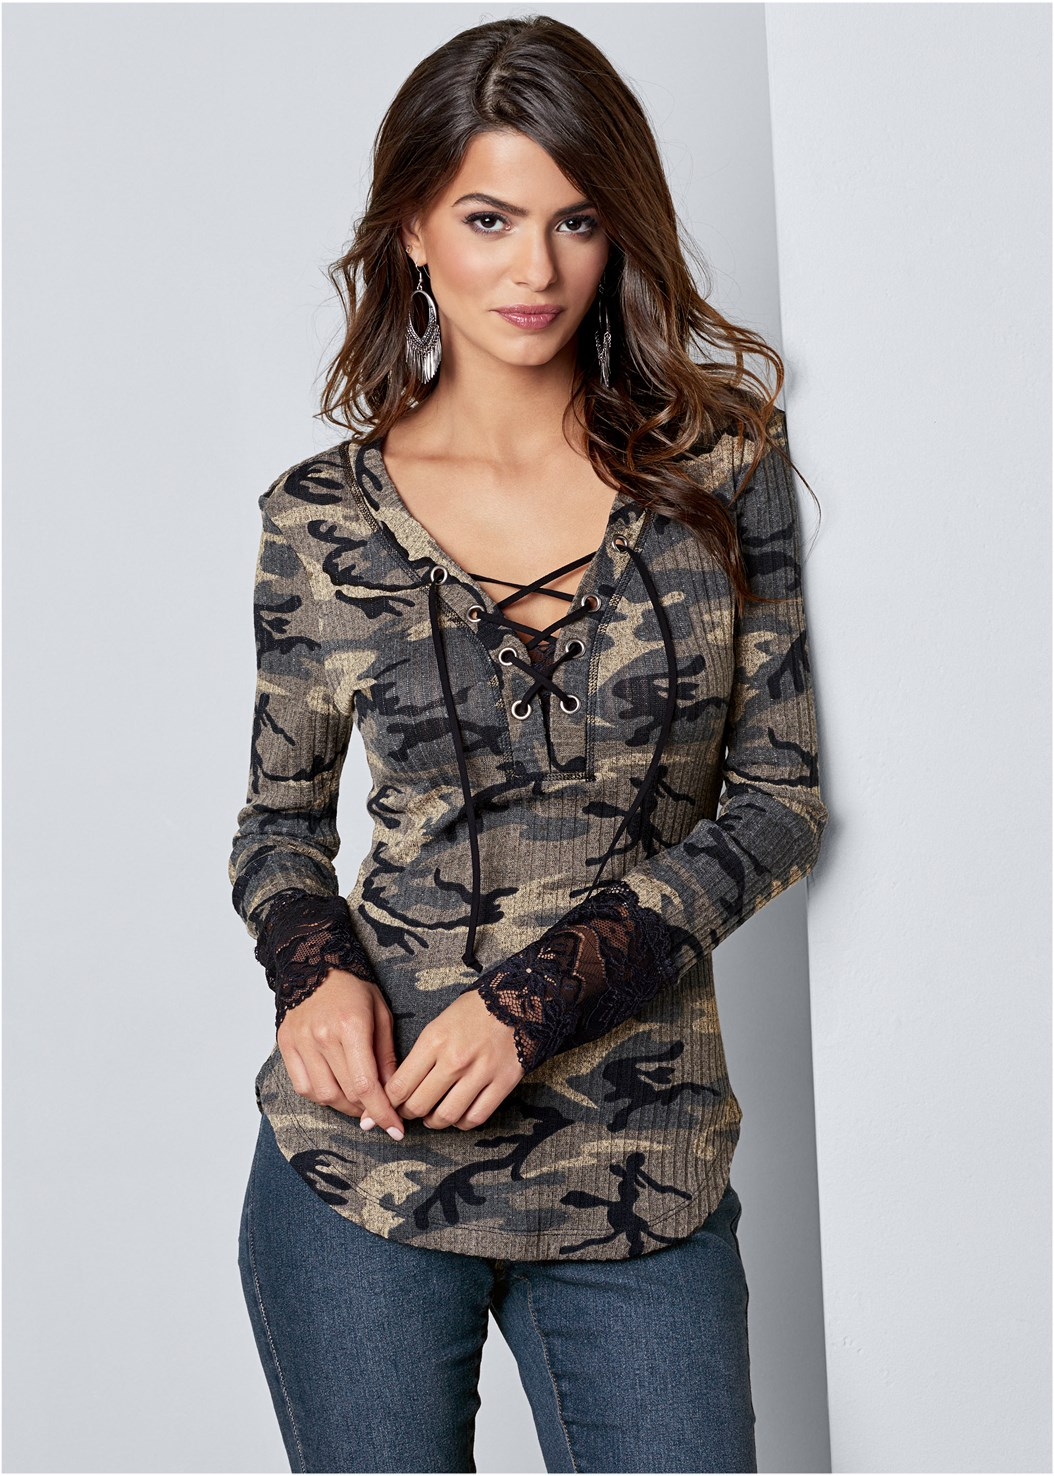 Lace Detail Camo Top,Color Skinny Jeans,Plunge Push Up Bra,Lace Up Tall Boots